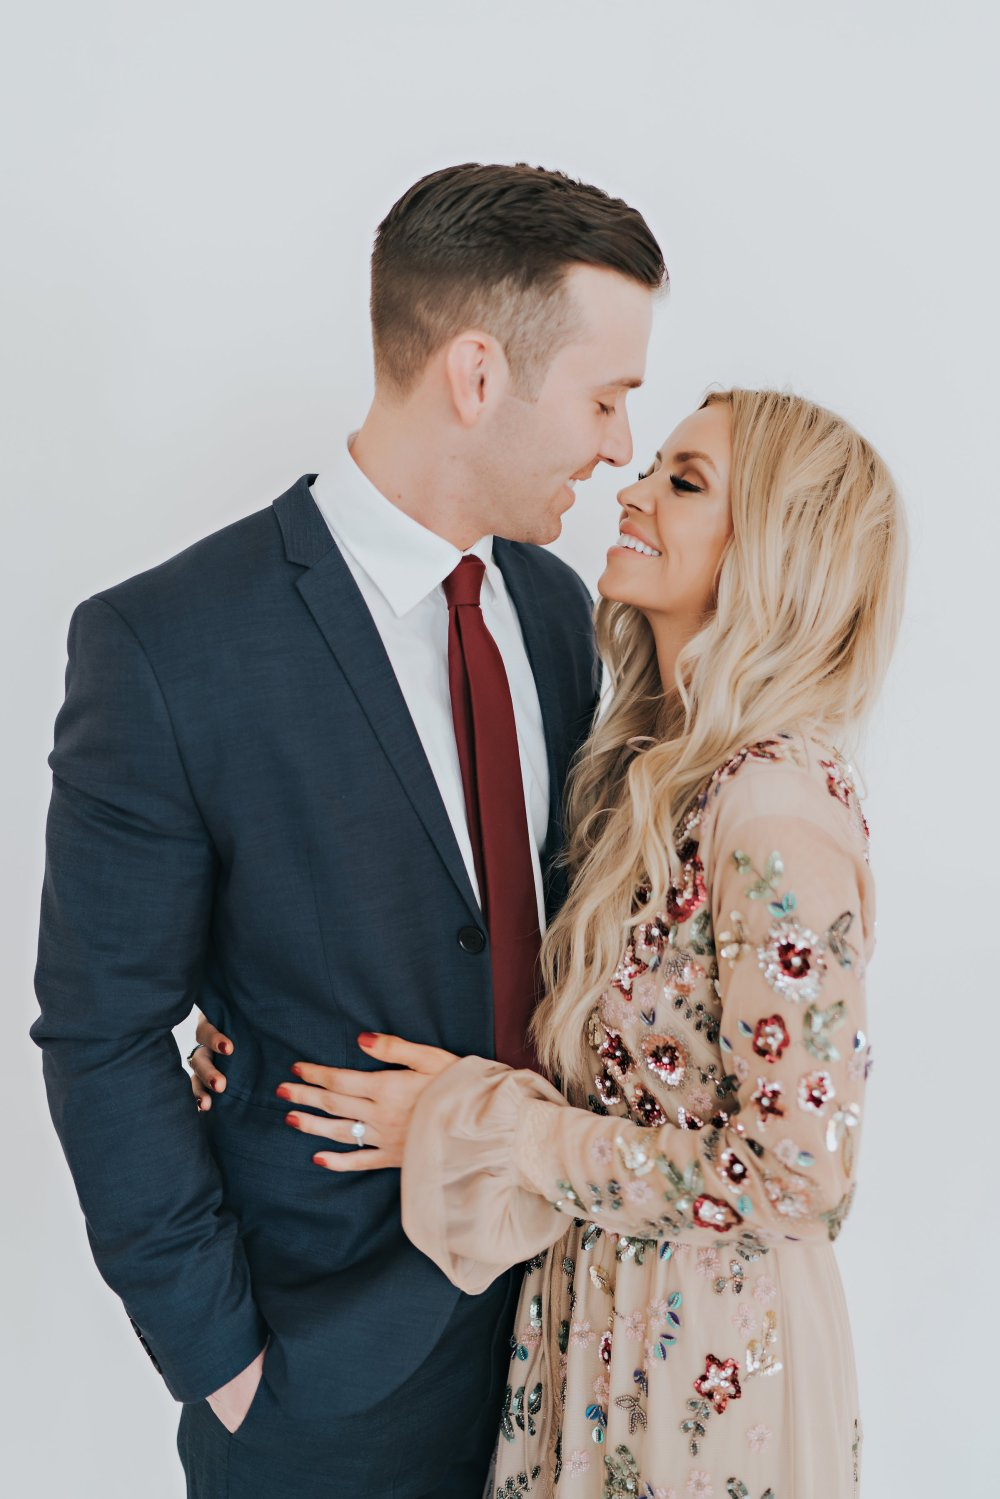 My love! Even though we are a family of four, always make sure to get a photo with just your spouse! Our outfits would also be perfect for weddings, parties or any special occasion! #familyphotos #couplephotos #coordinatingoutfits #specialoccasionoutfits